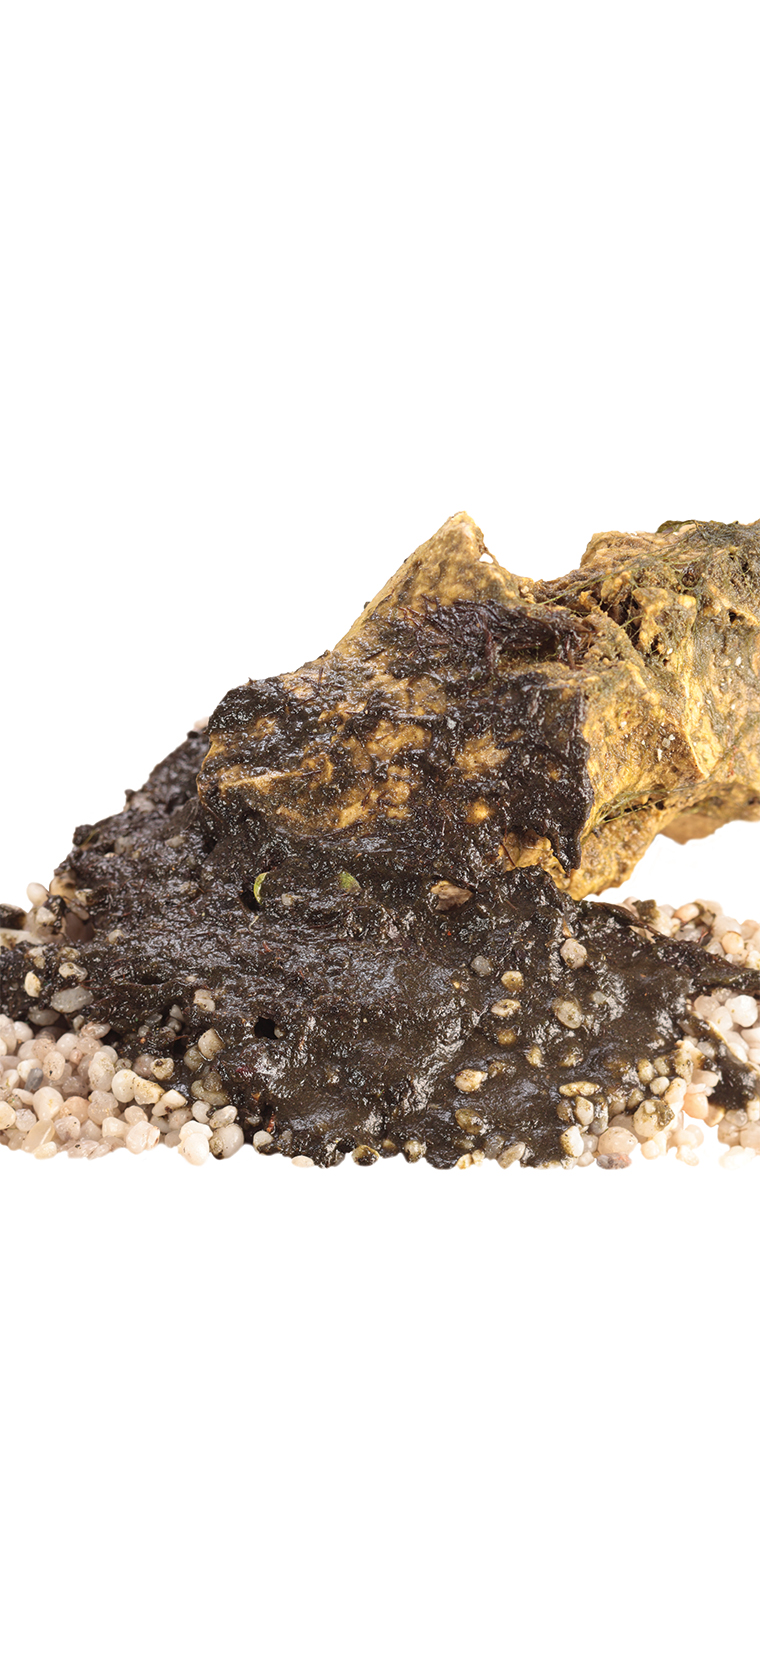 Aquarium rock and gravel covered in brown, muddy sludge